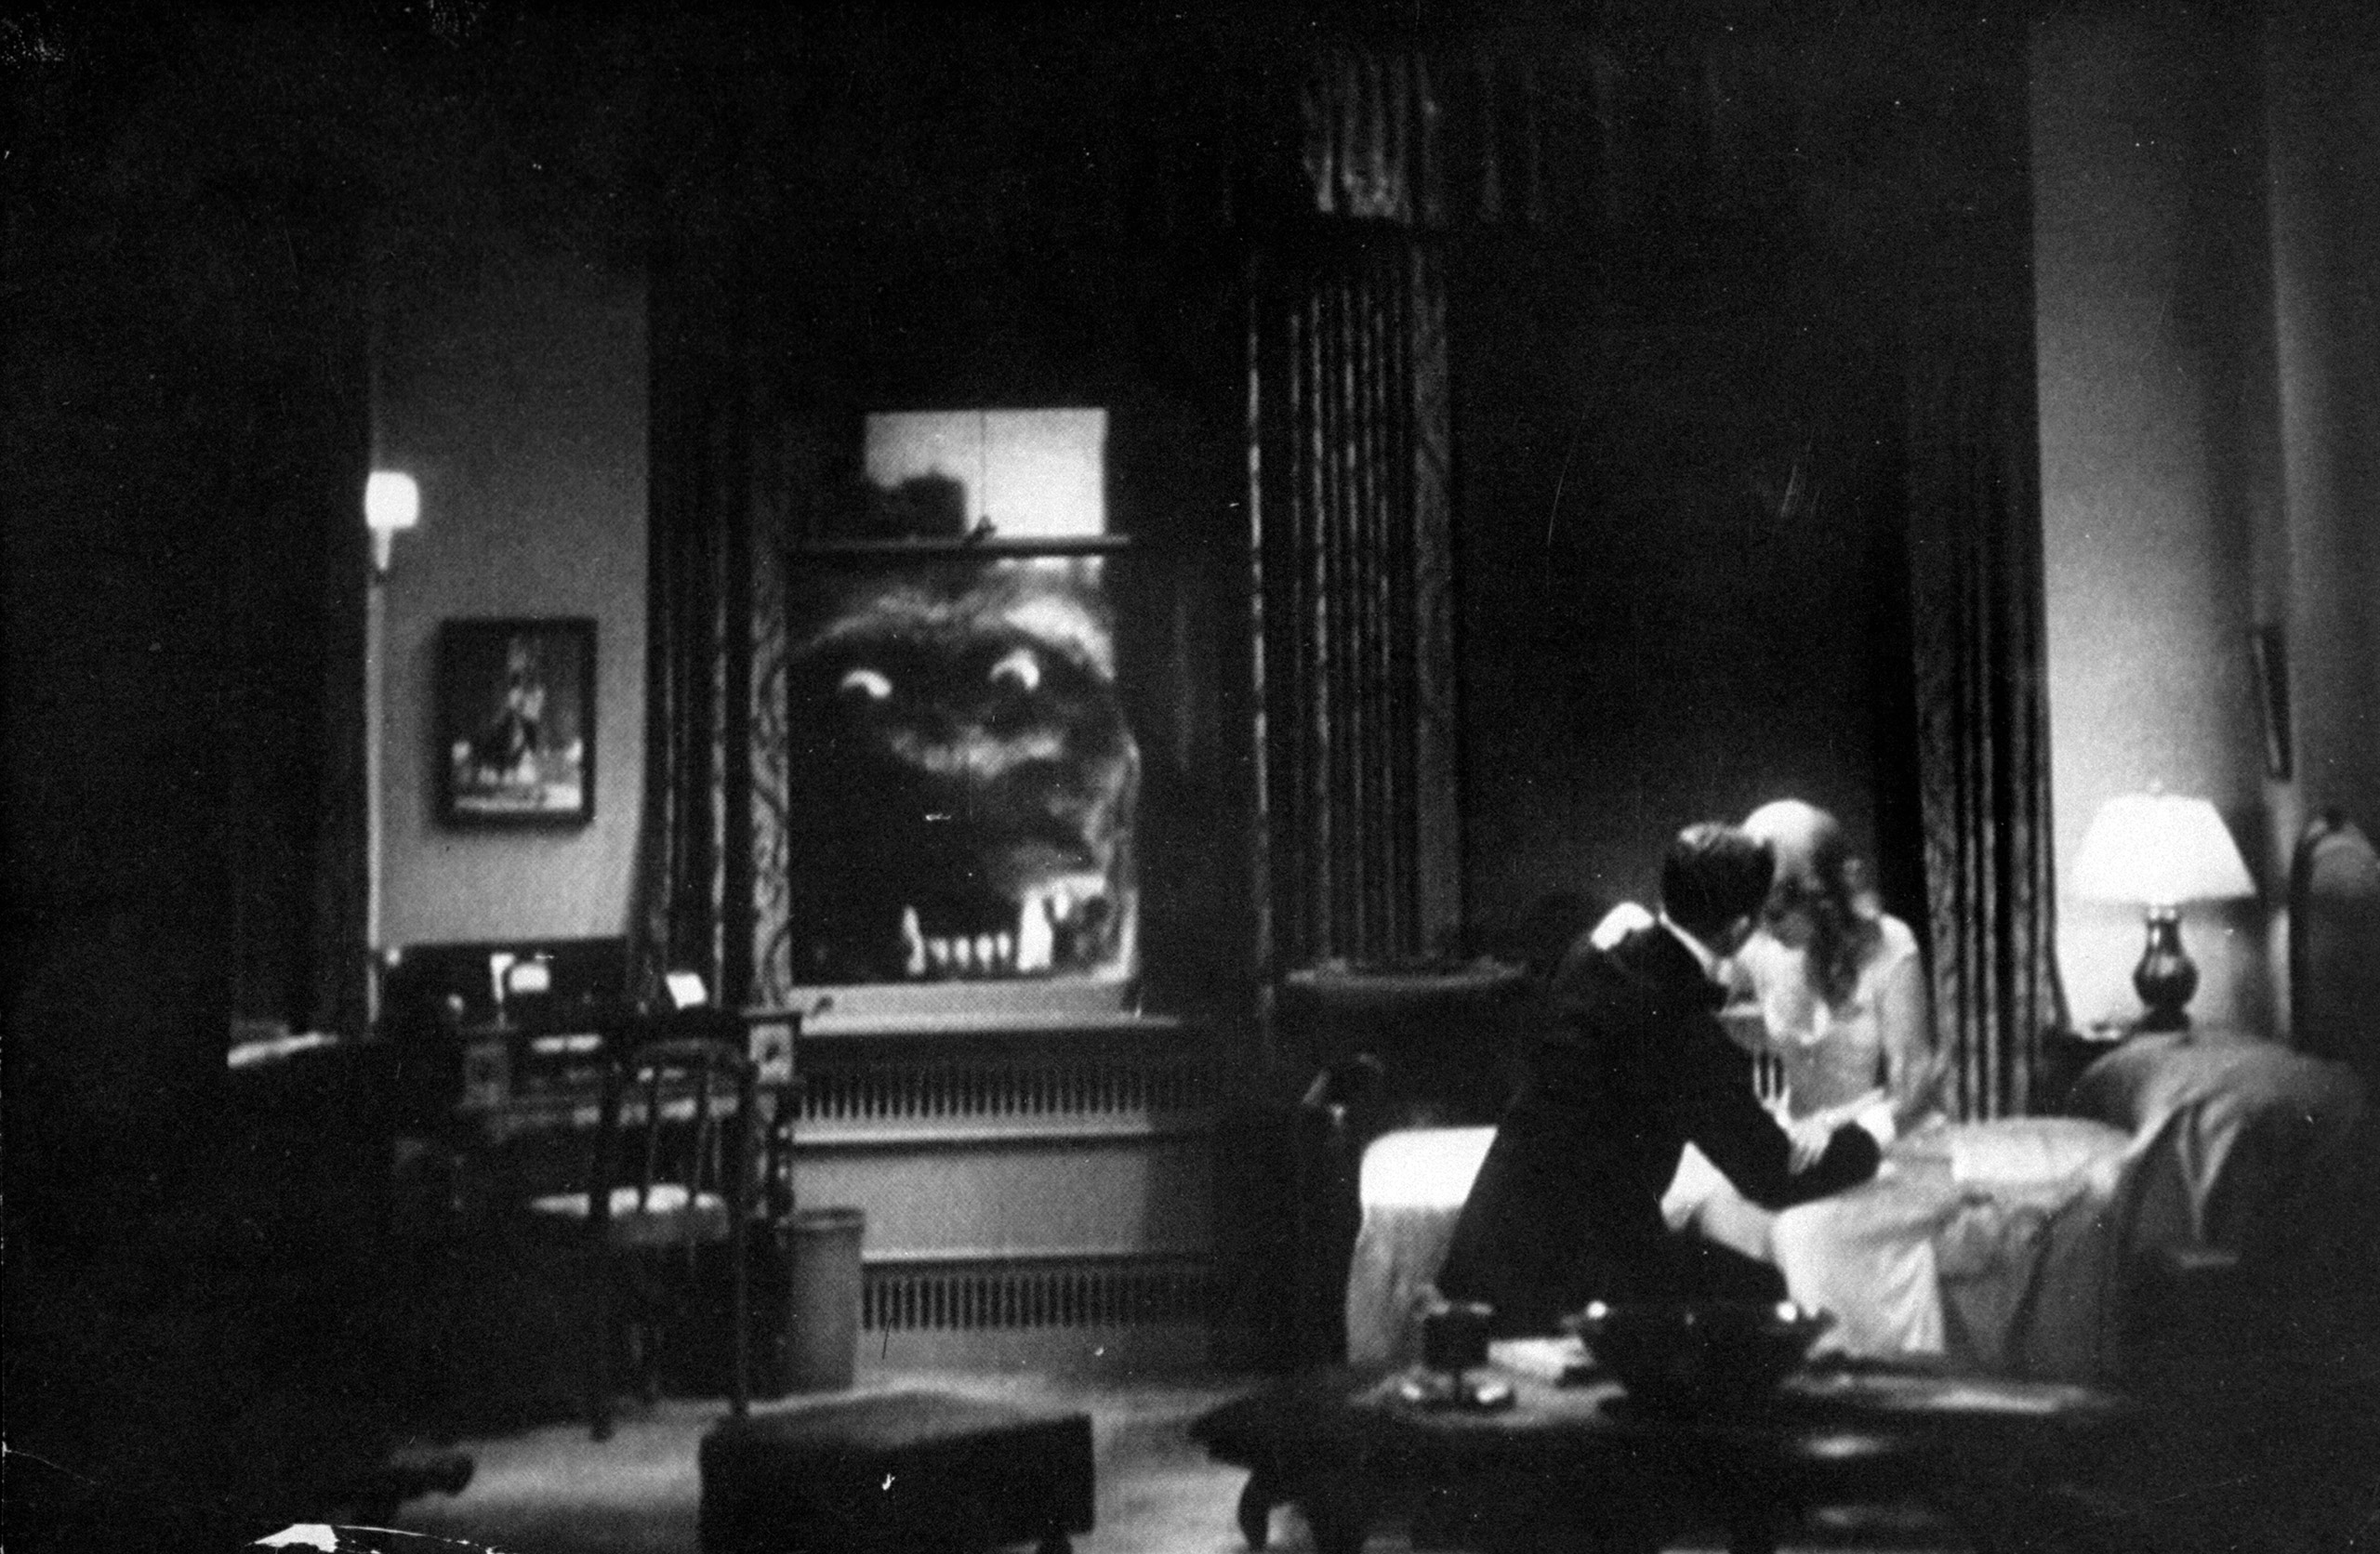 Scene from the 1933 film King Kong.